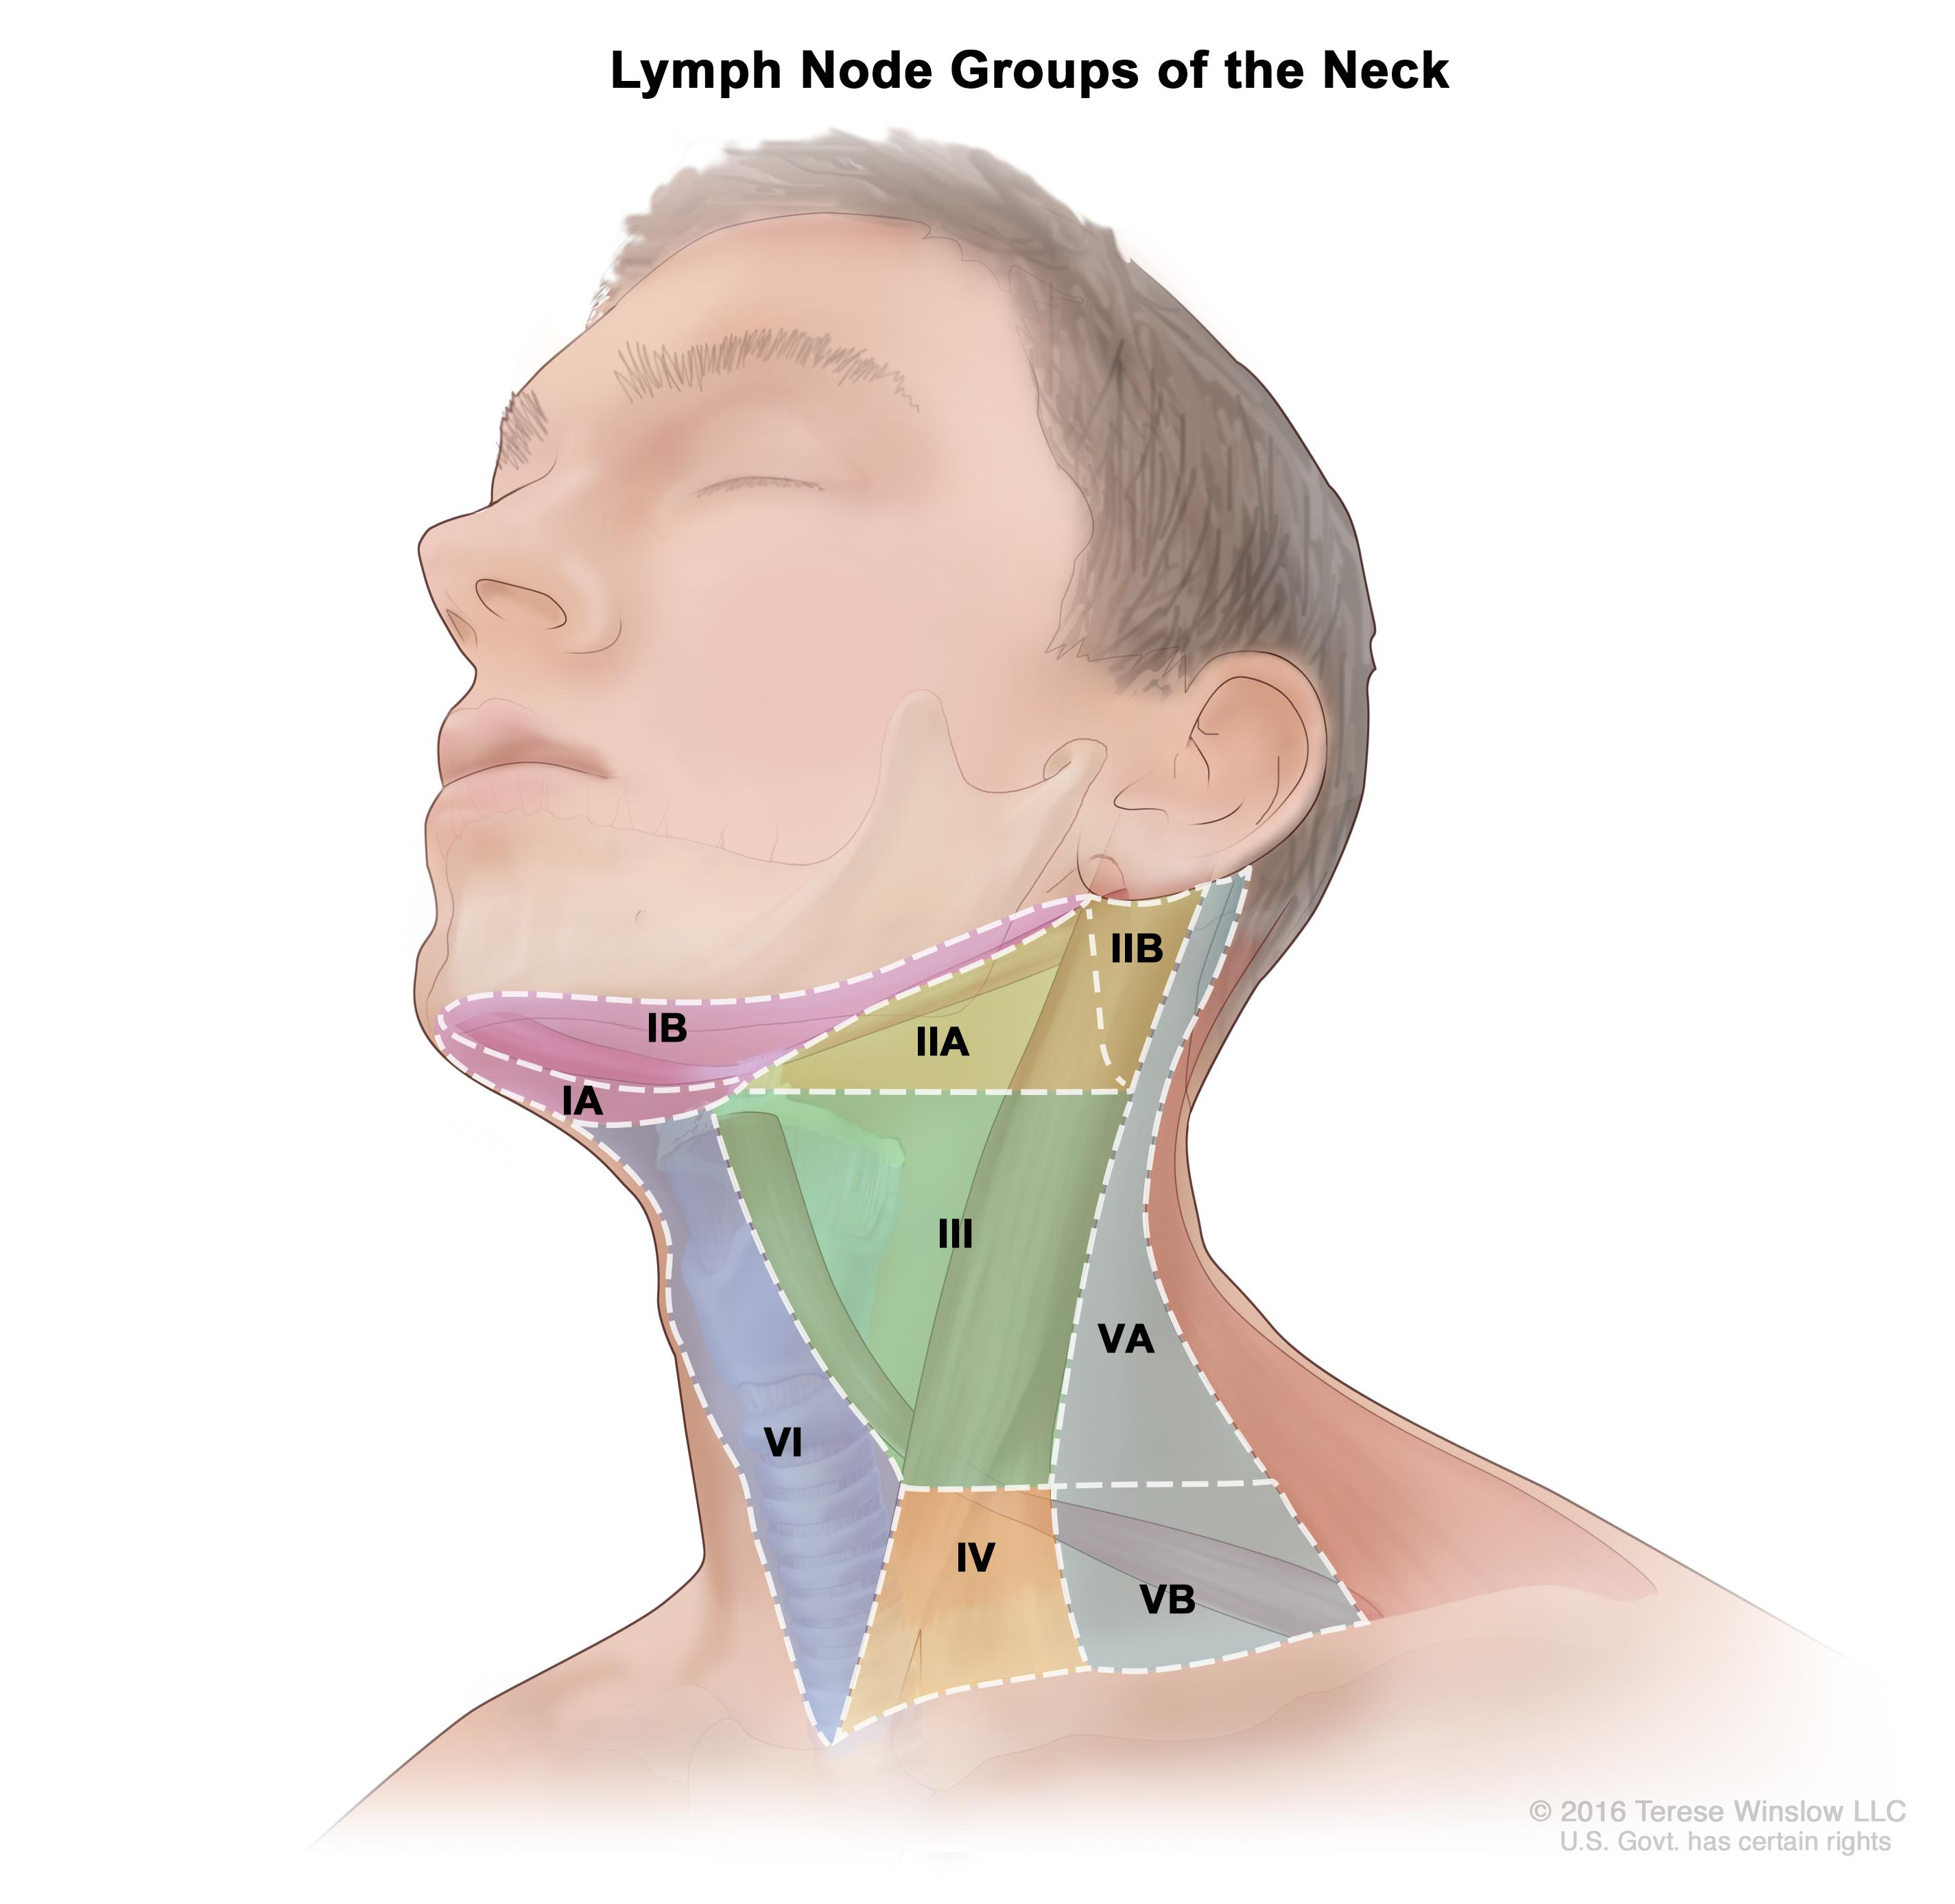 Cancer metastatic to lymph nodes,